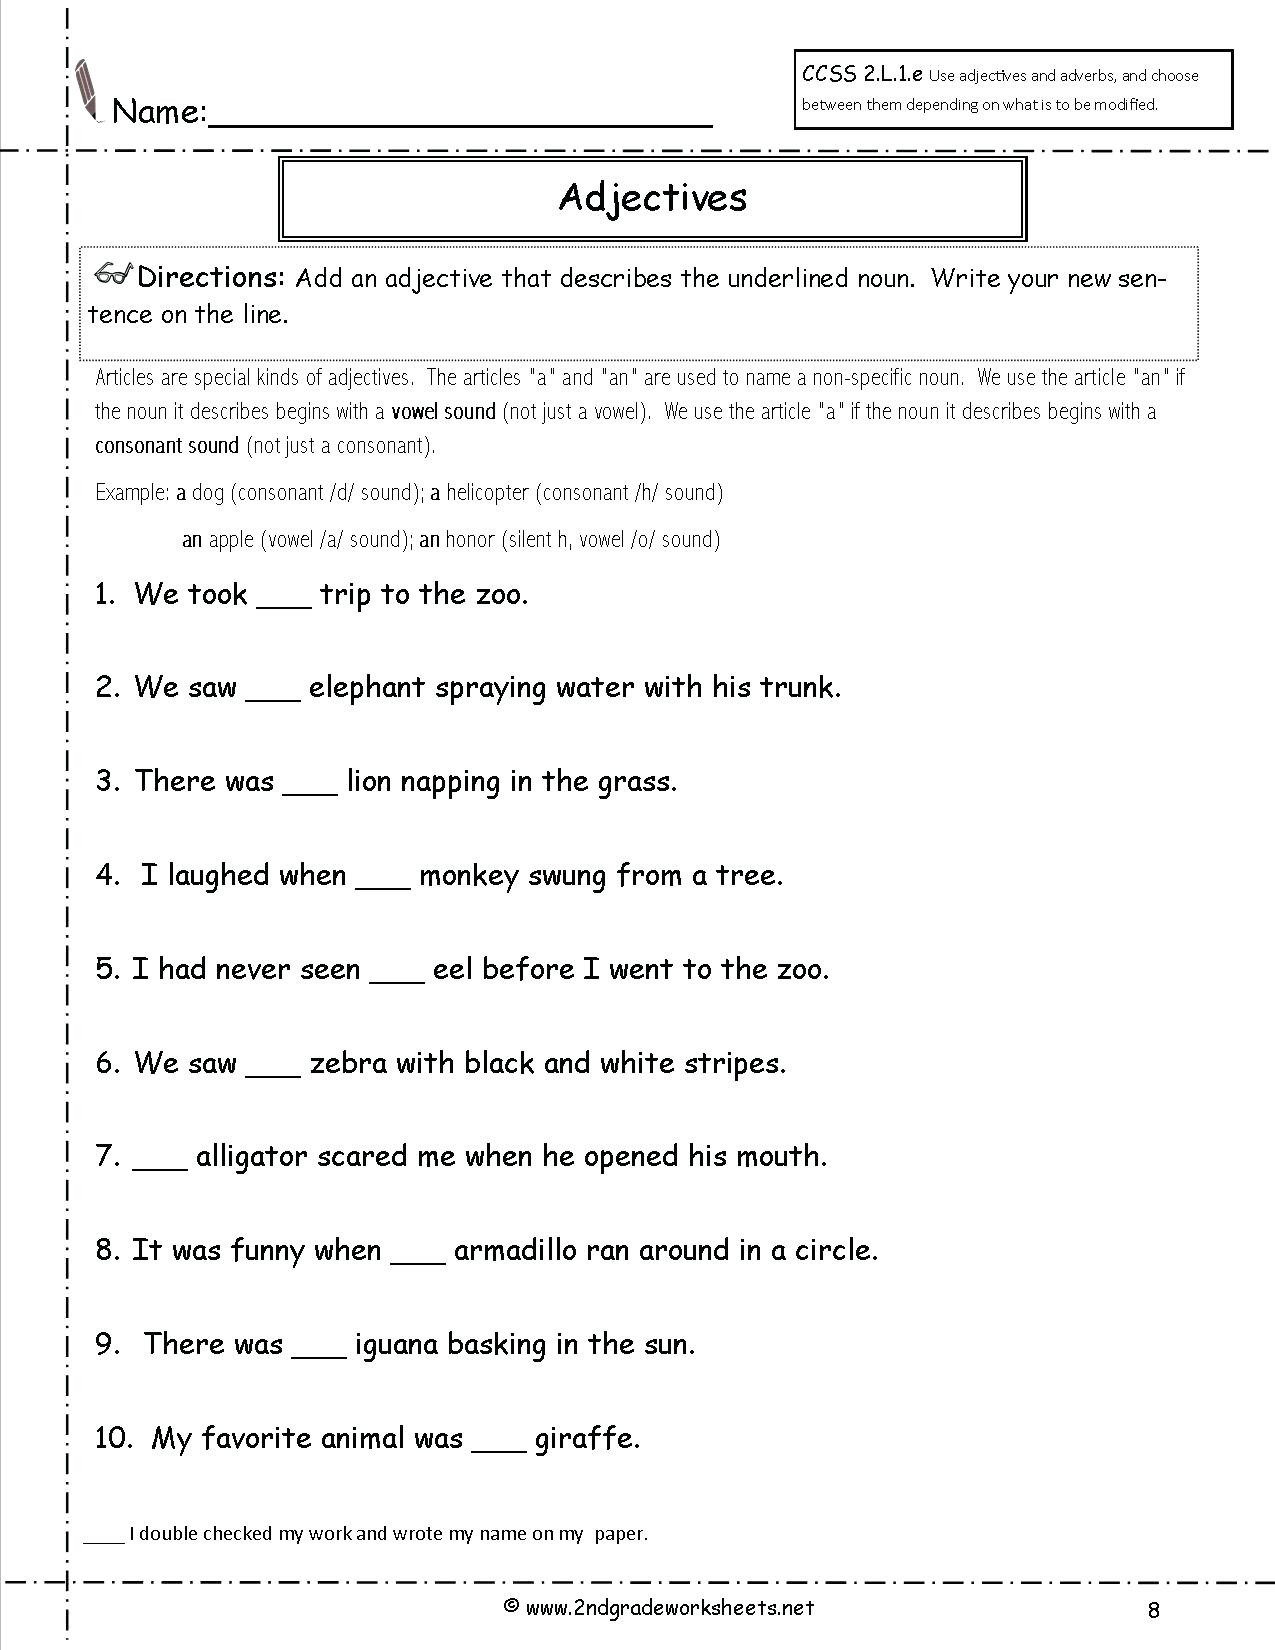 Reading Comprehension Worksheets For 2nd Grade To